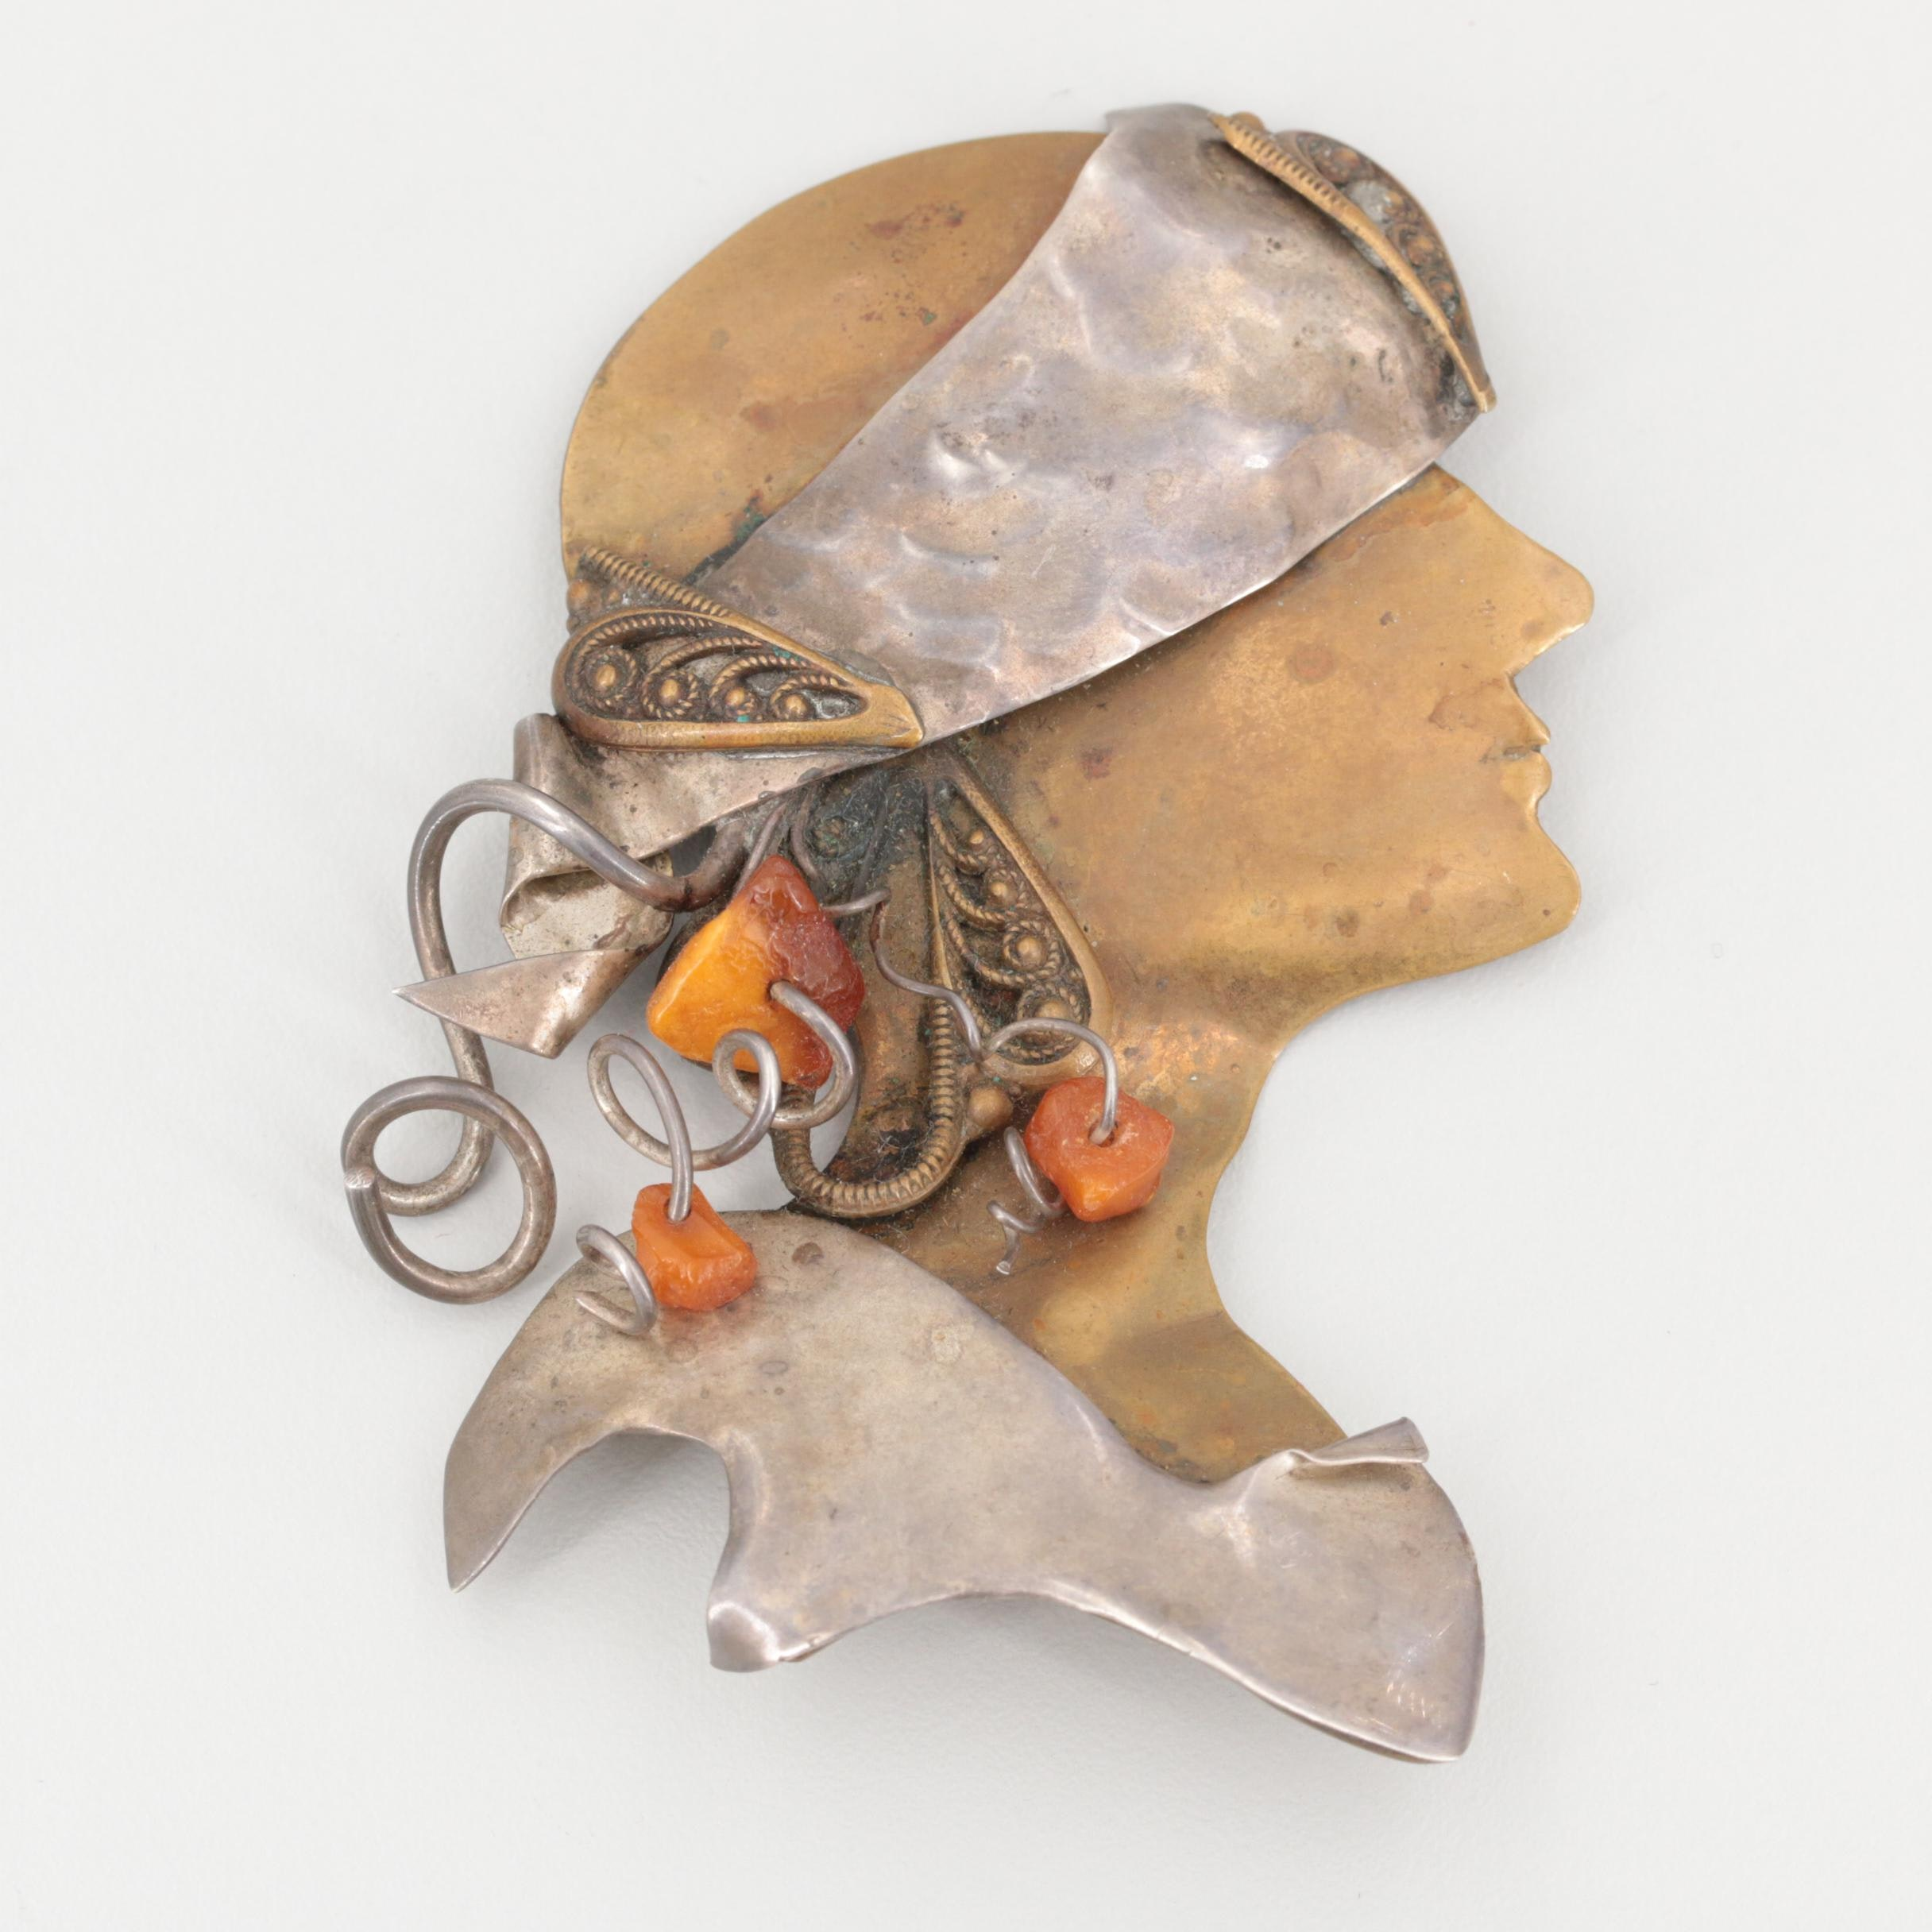 Sterling Silver and Brass Figural Brooch with Glass Bead Accents